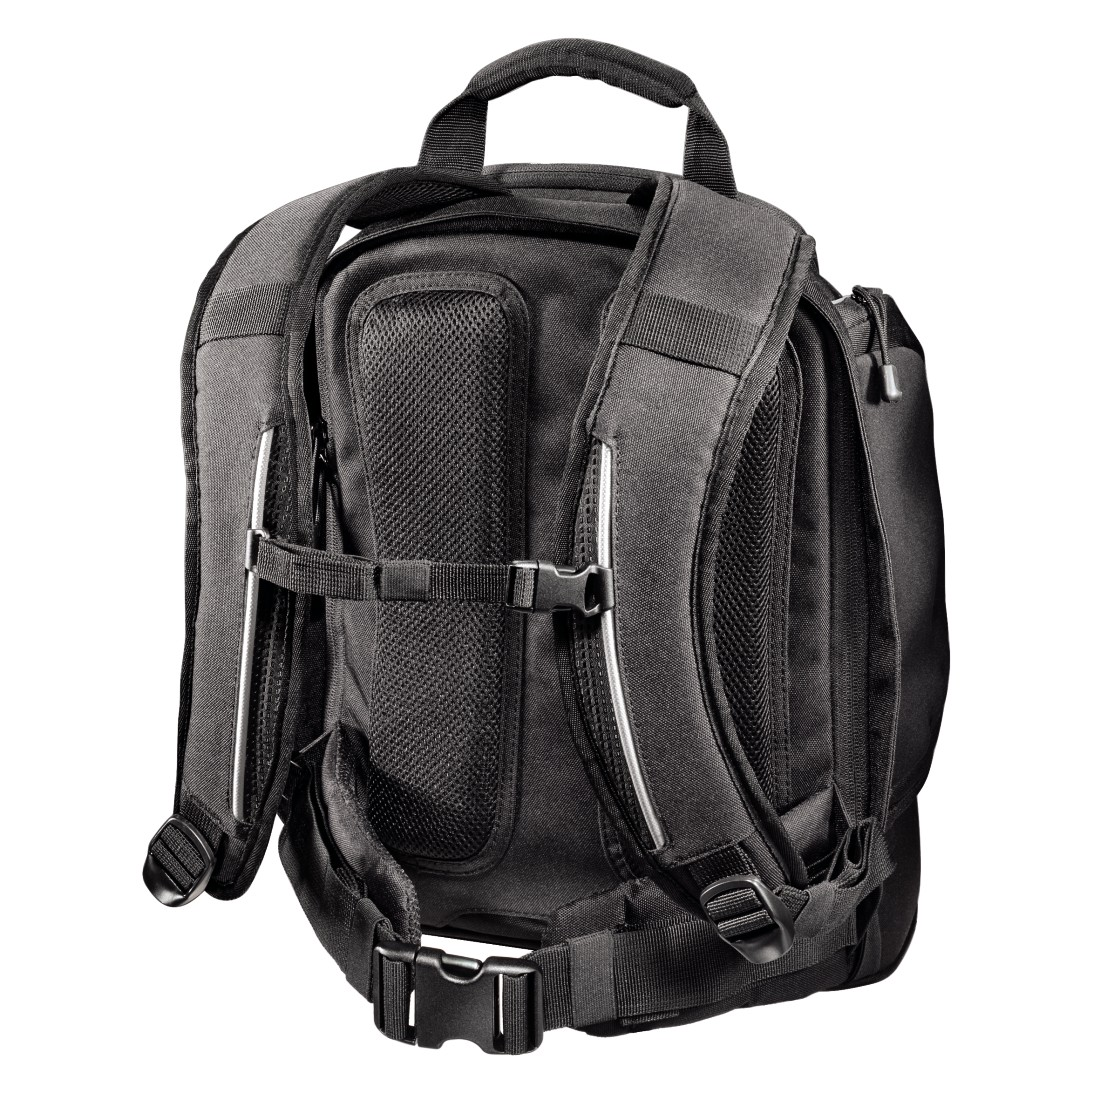 abx5 High-Res Image 5 - Hama, Daytour Camera Backpack, 180, black